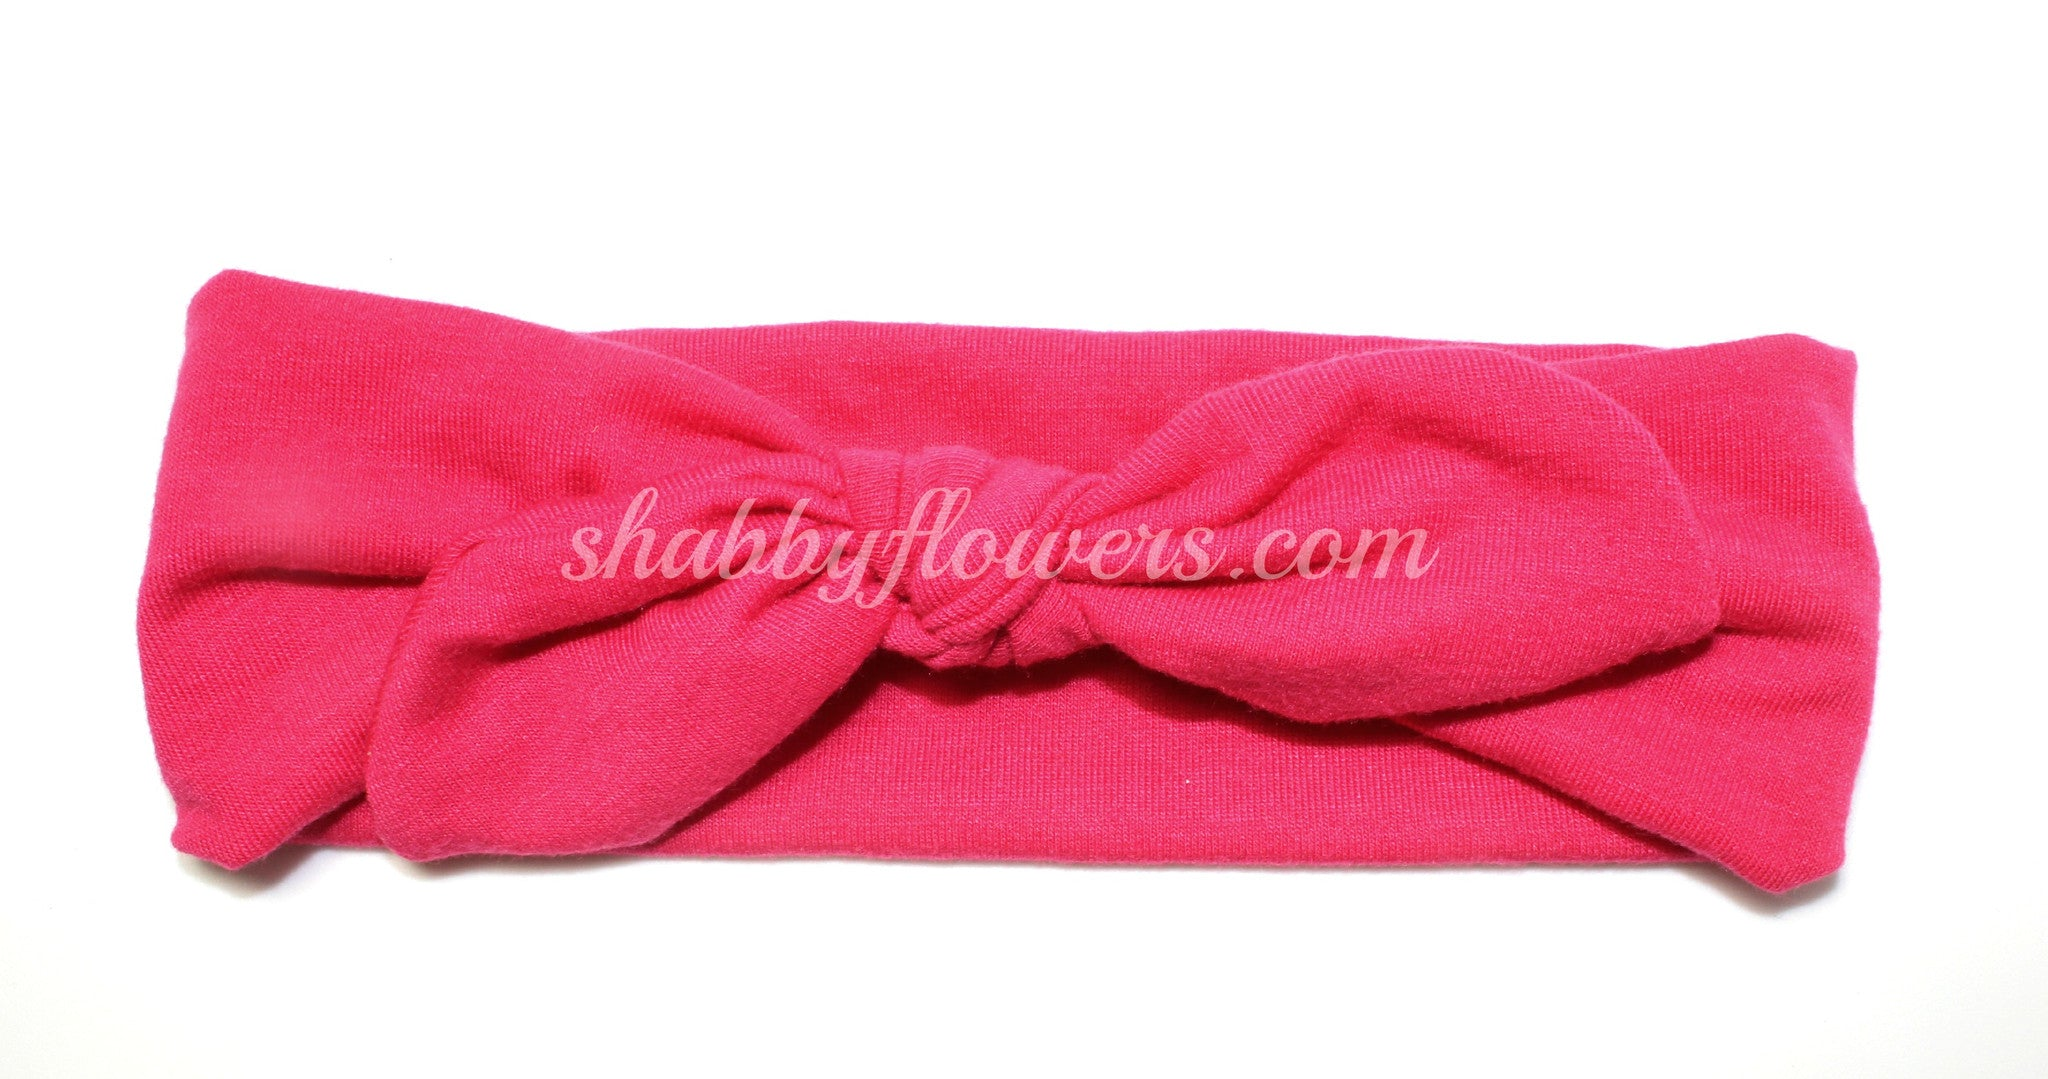 Knot Headband in Hot Pink - Regular - shabbyflowers.com